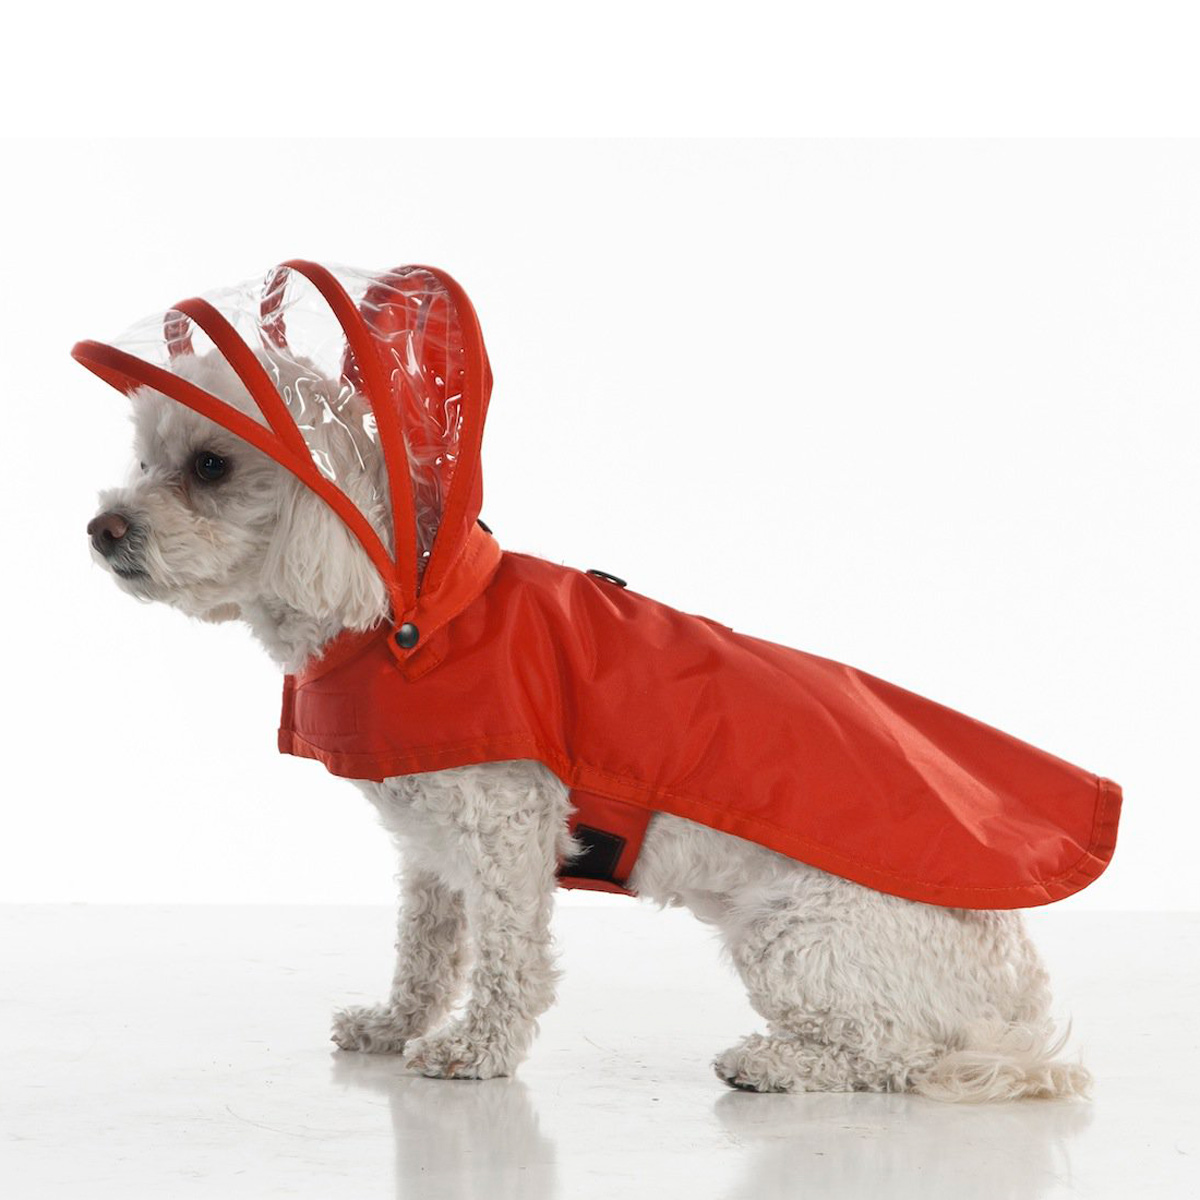 Dog Supplies Raincoats 2017 New Fashion Designed Hooded Large Size Dog Raincoat Puppy Pet